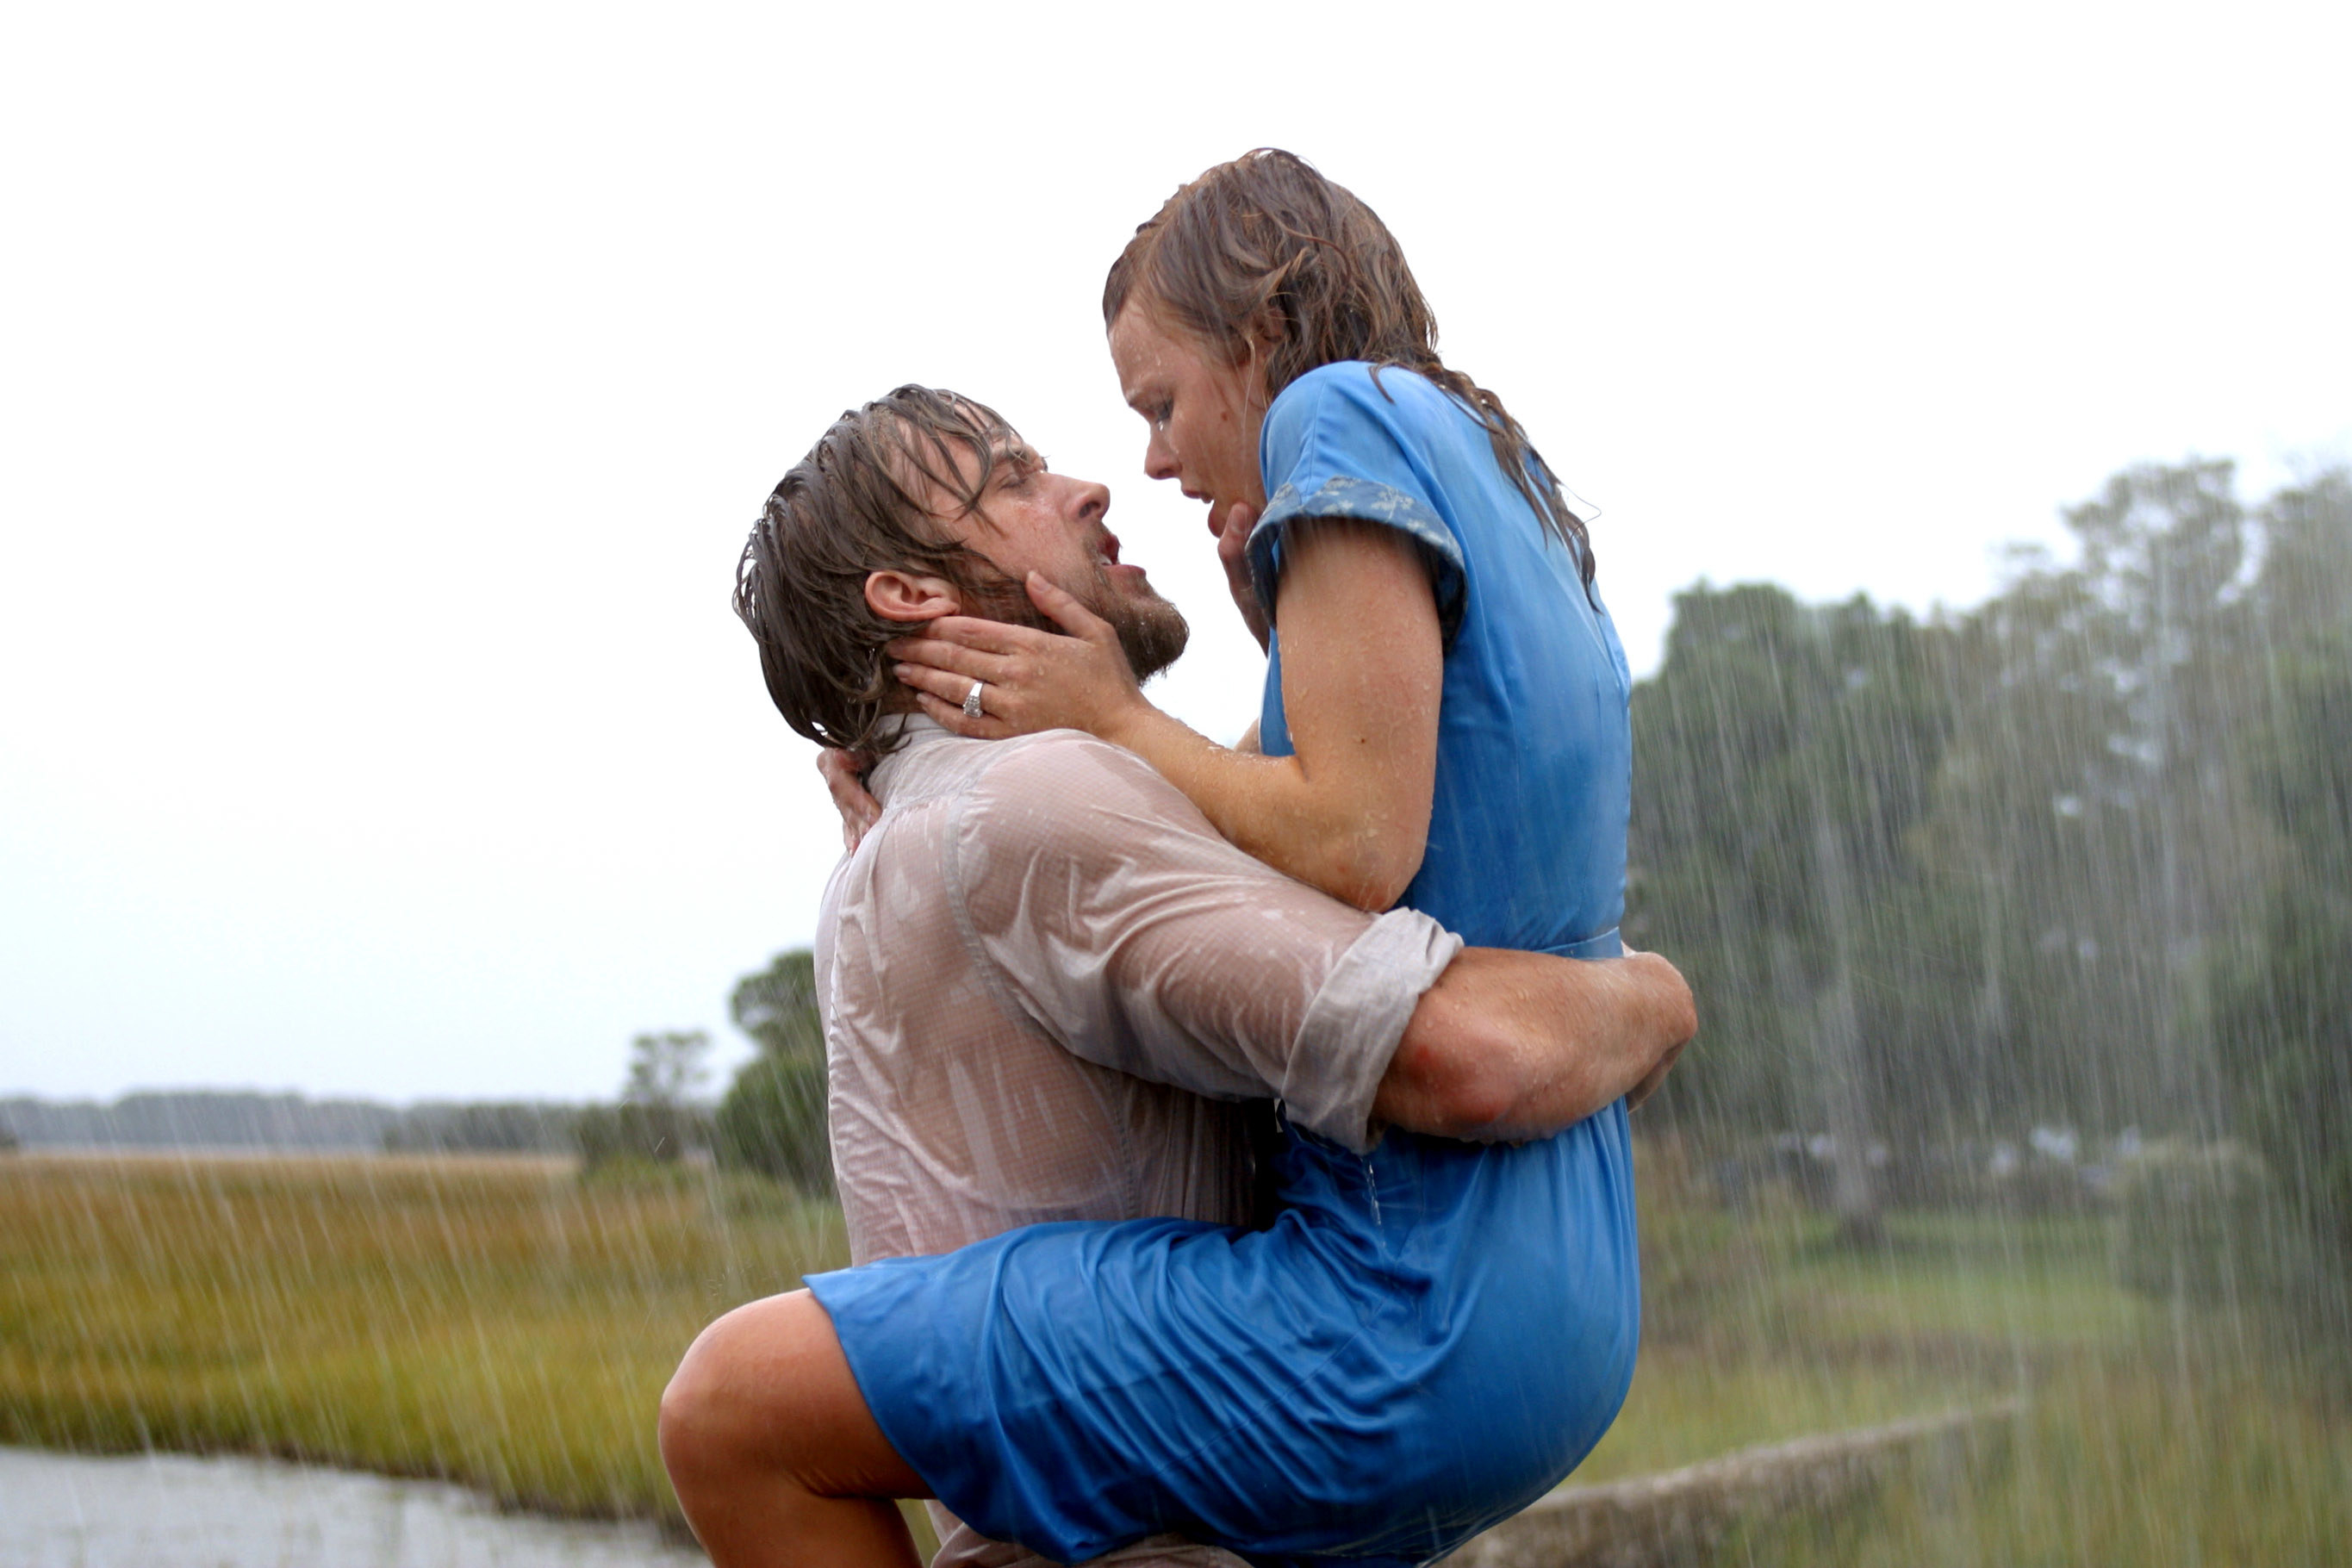 Noah and Allie hugging and about to kiss in the rain